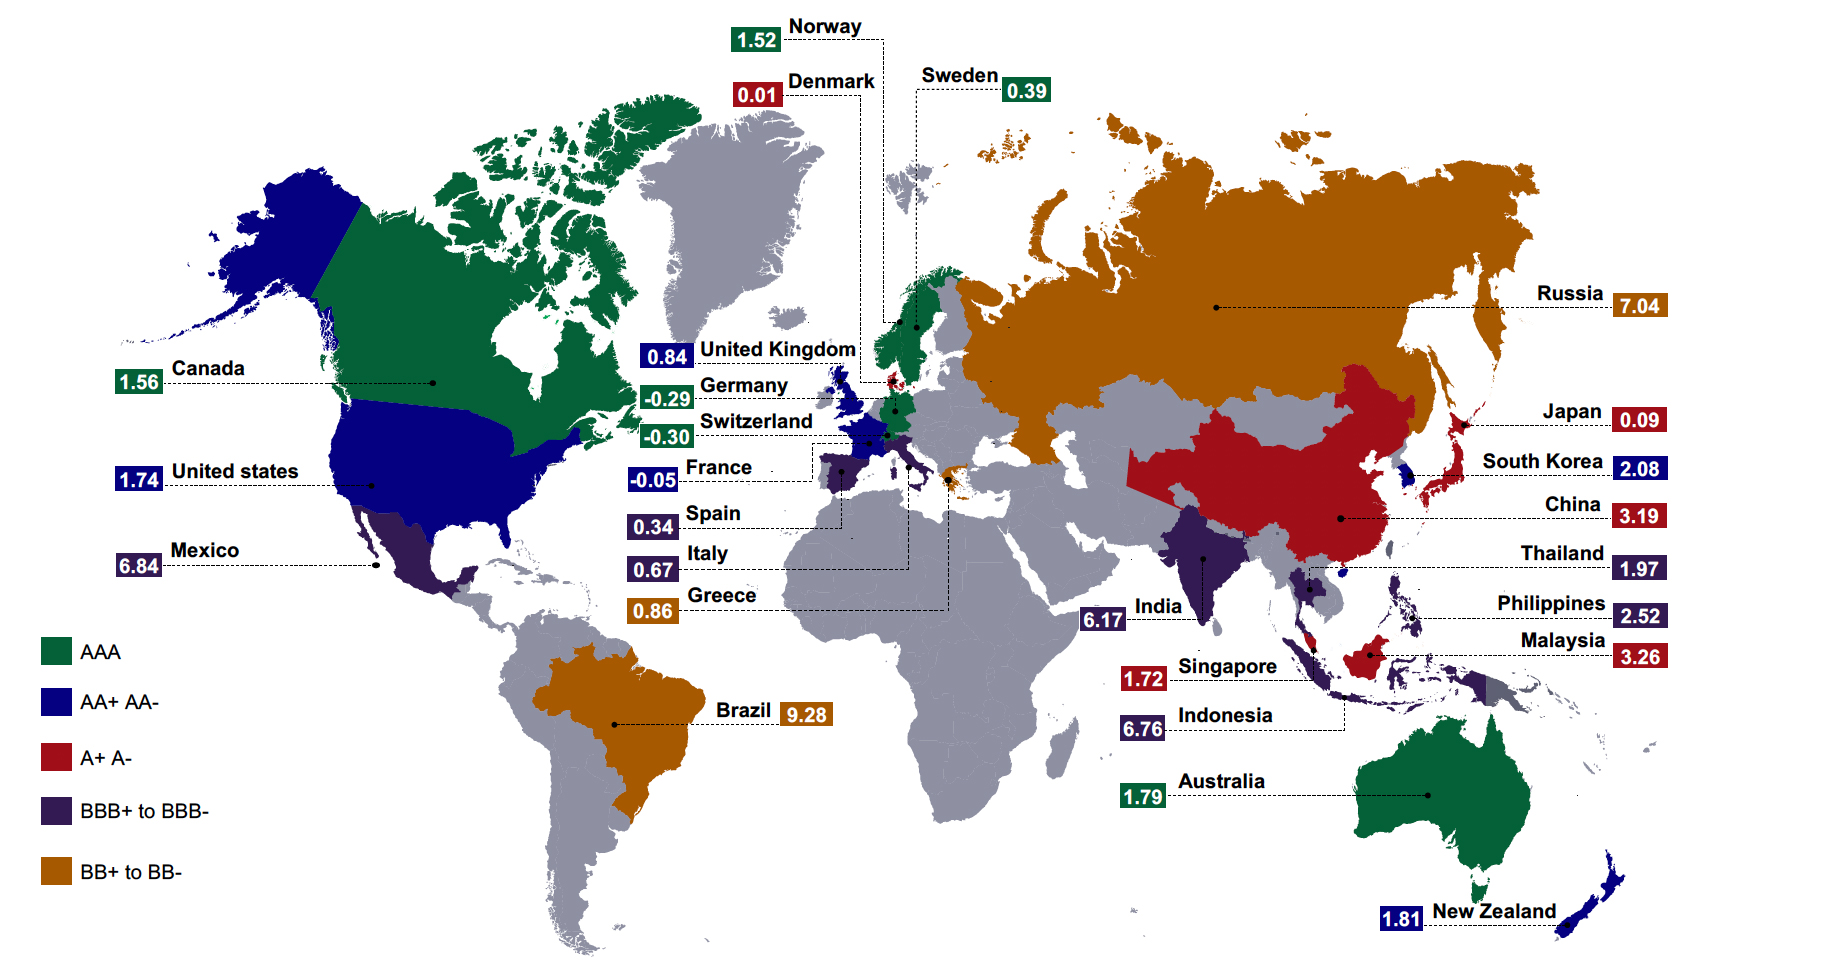 This diagram takes the form of a global map, that lists the sovereign bond yields and credit ratings of various countries. It shows that a number of high-rated countries have yields that are low or even negative, with the latter representing US$18 trillion in issues.